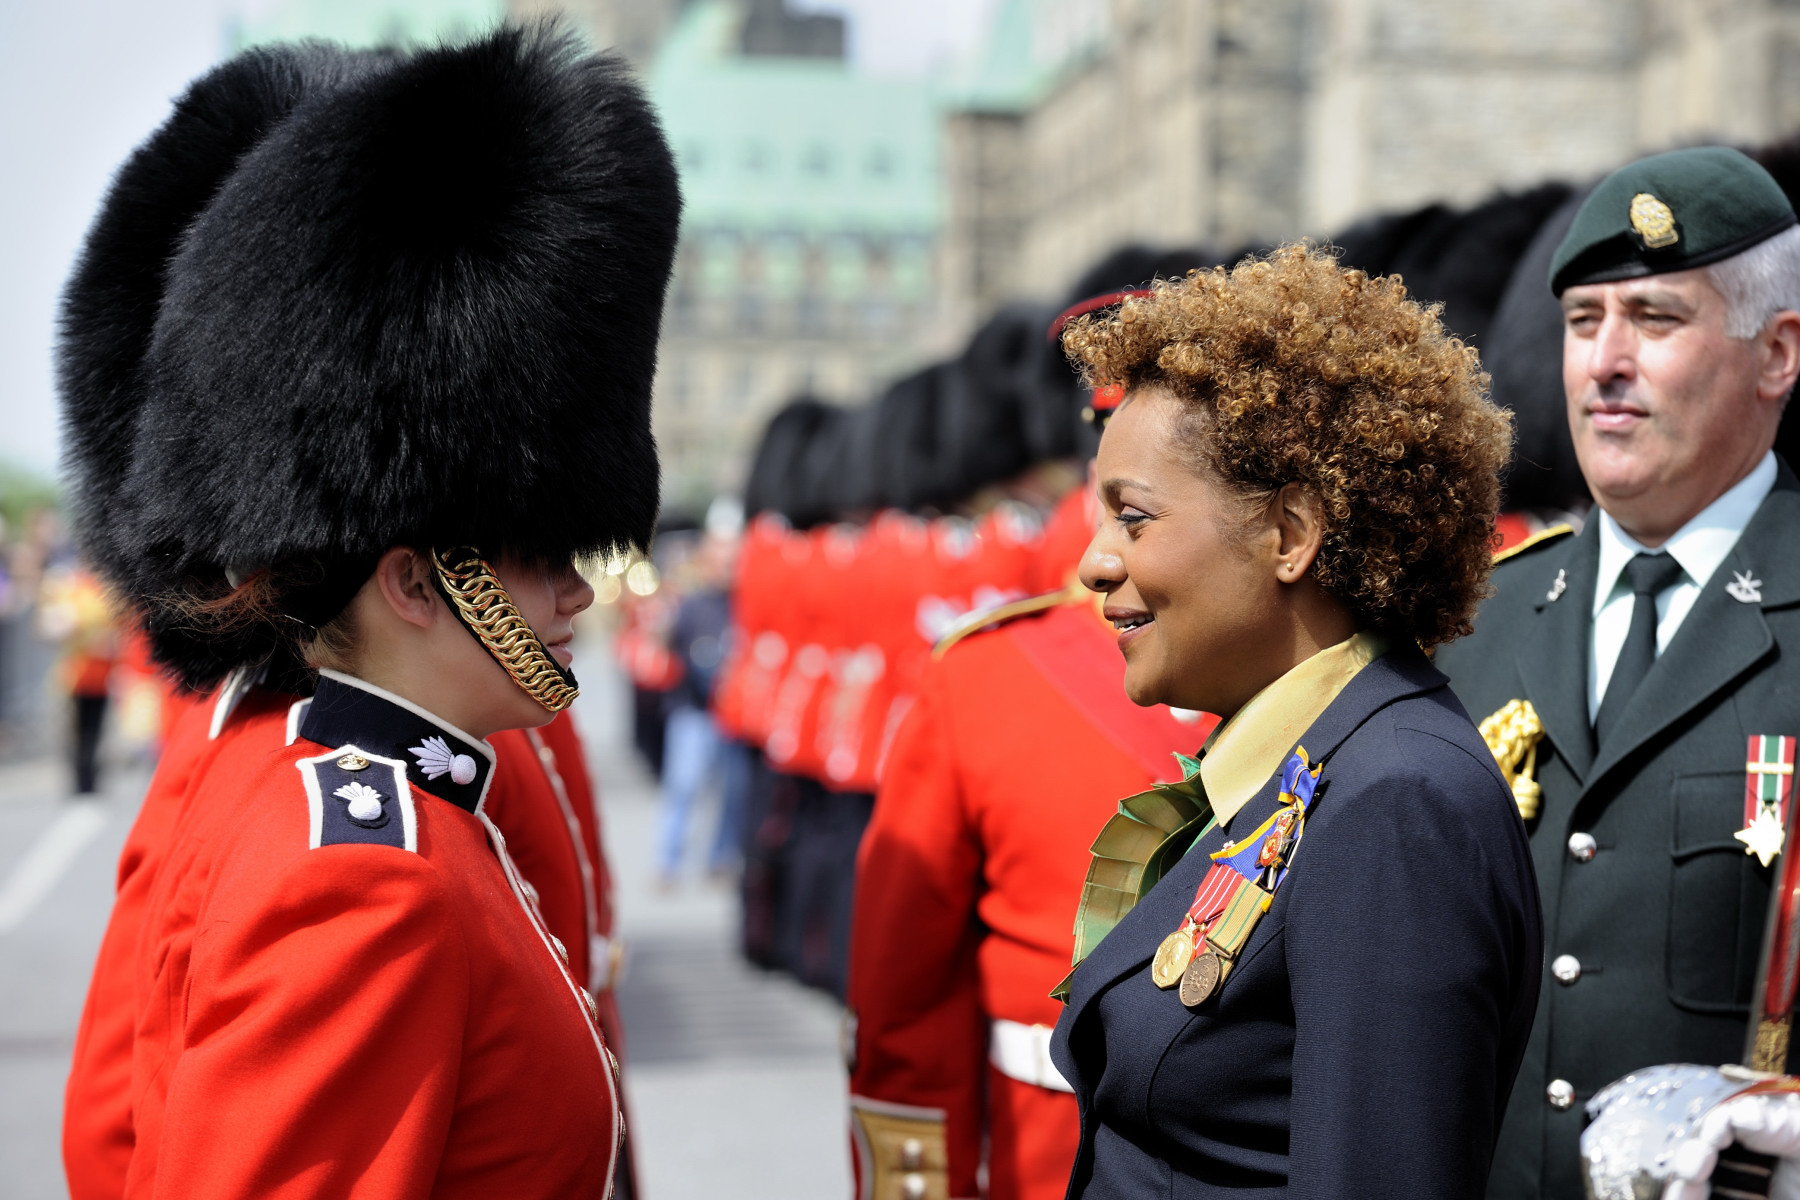 The Governor General inspected the Ceremonial Guard.